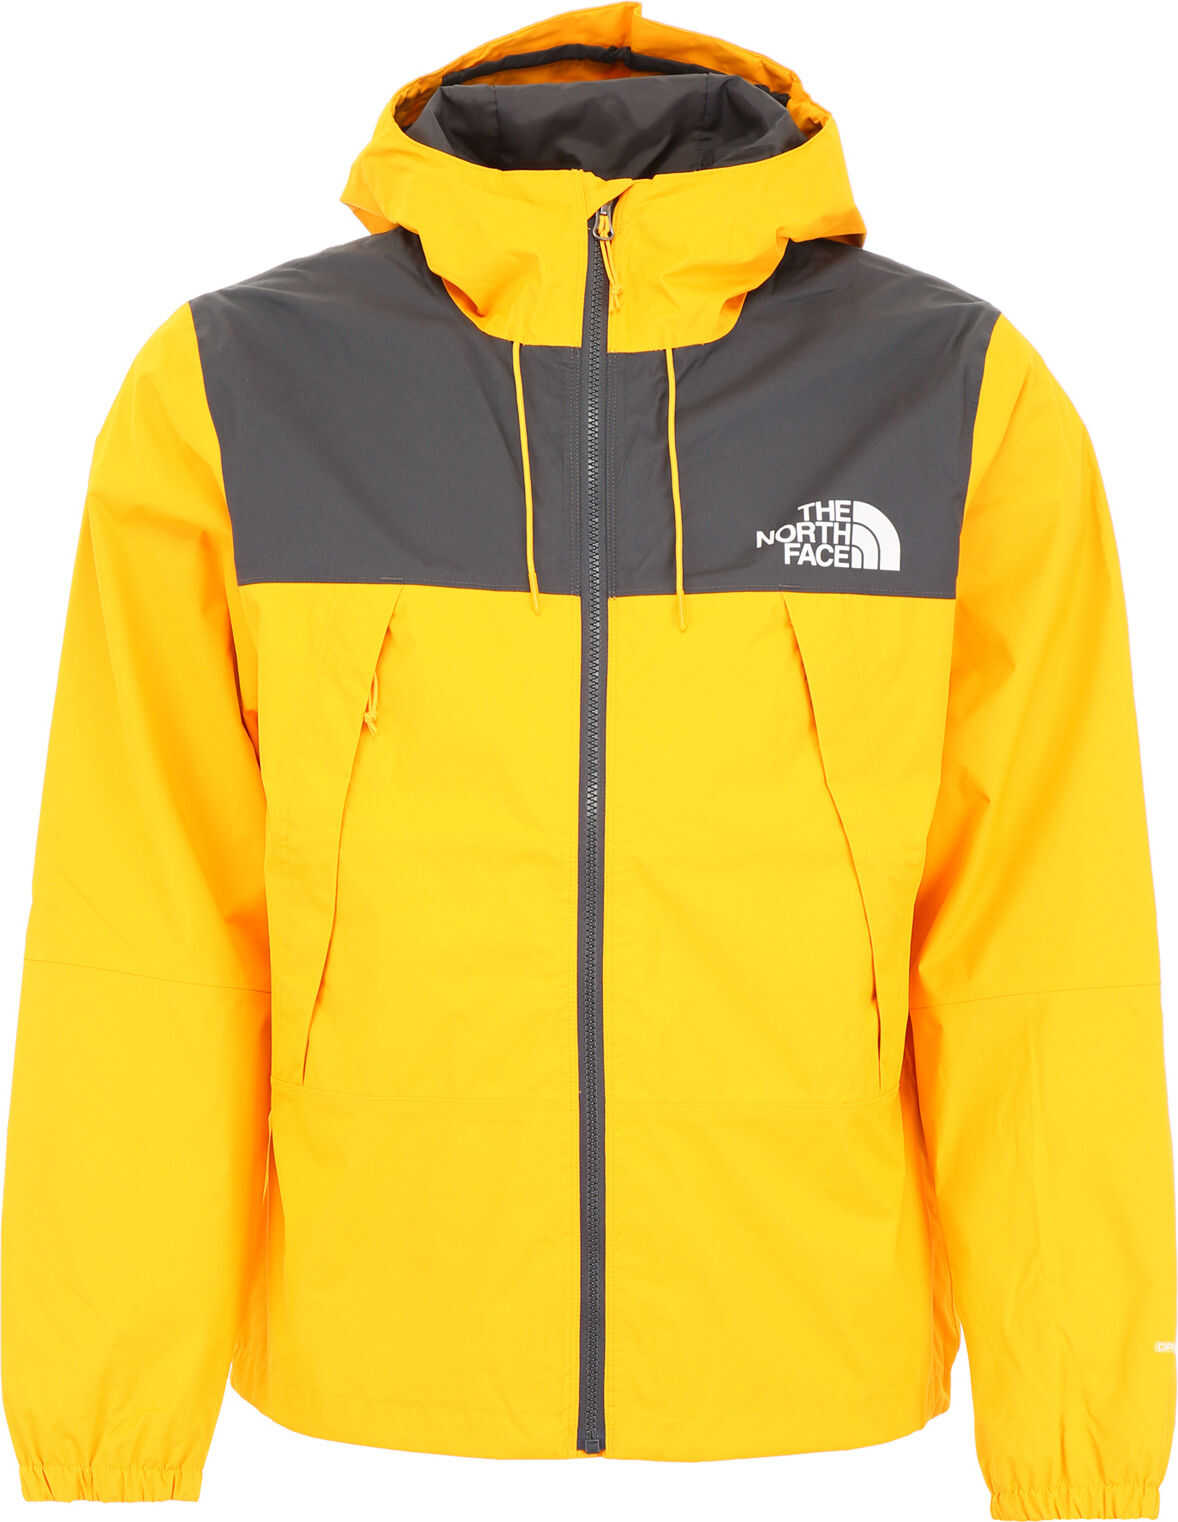 The North Face 1990 Mountain Jacket ZINNIA ORANGE